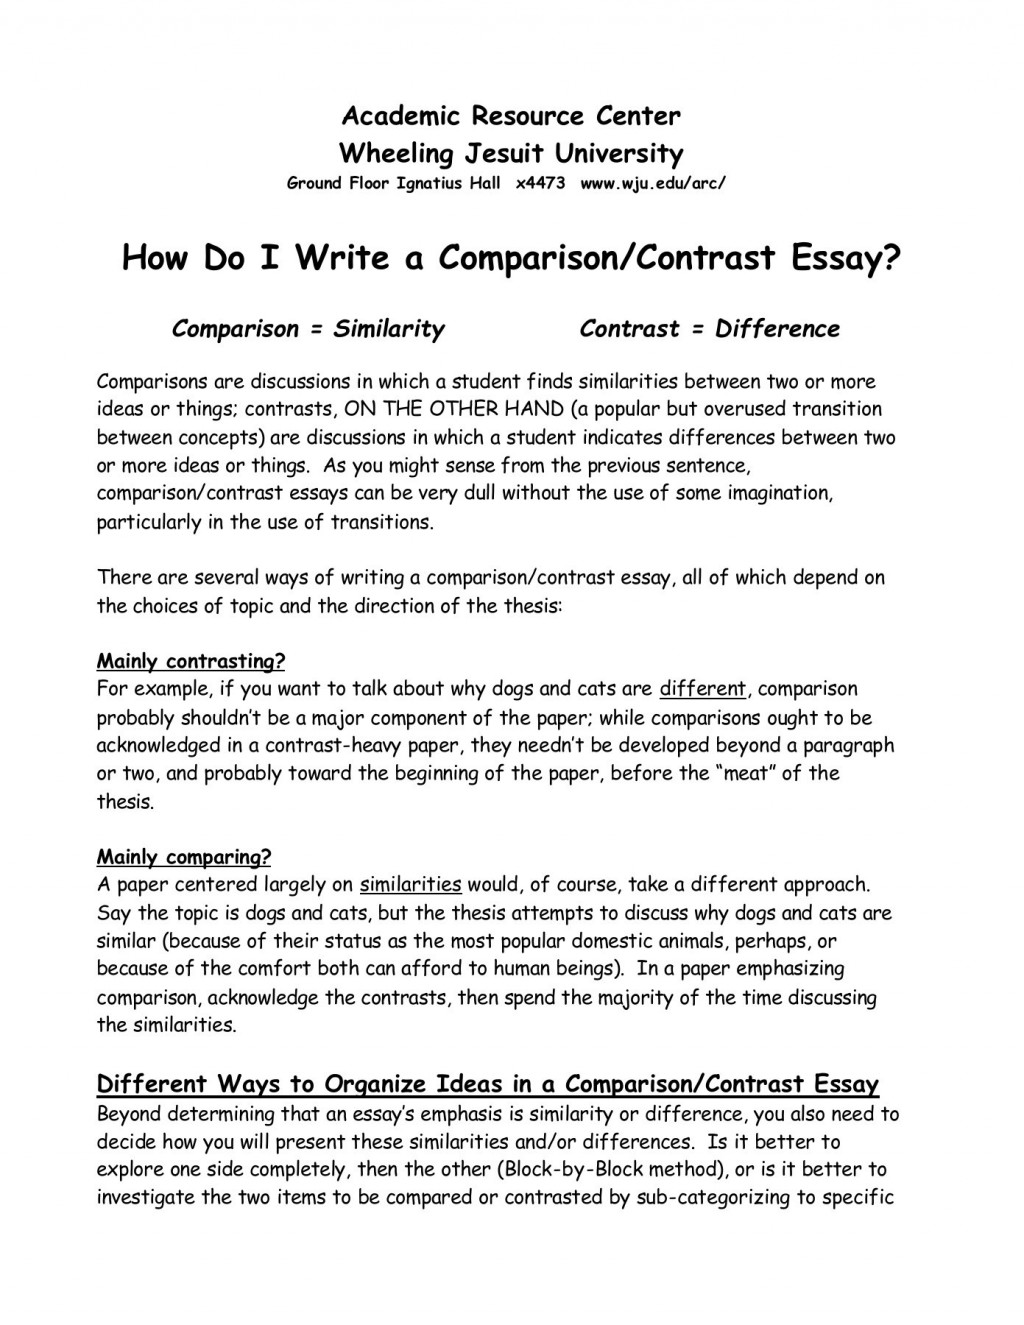 002 Essay Example Compare And Contrast Dog Excellent Cat Comparison Between Cats Dogs Pet Large